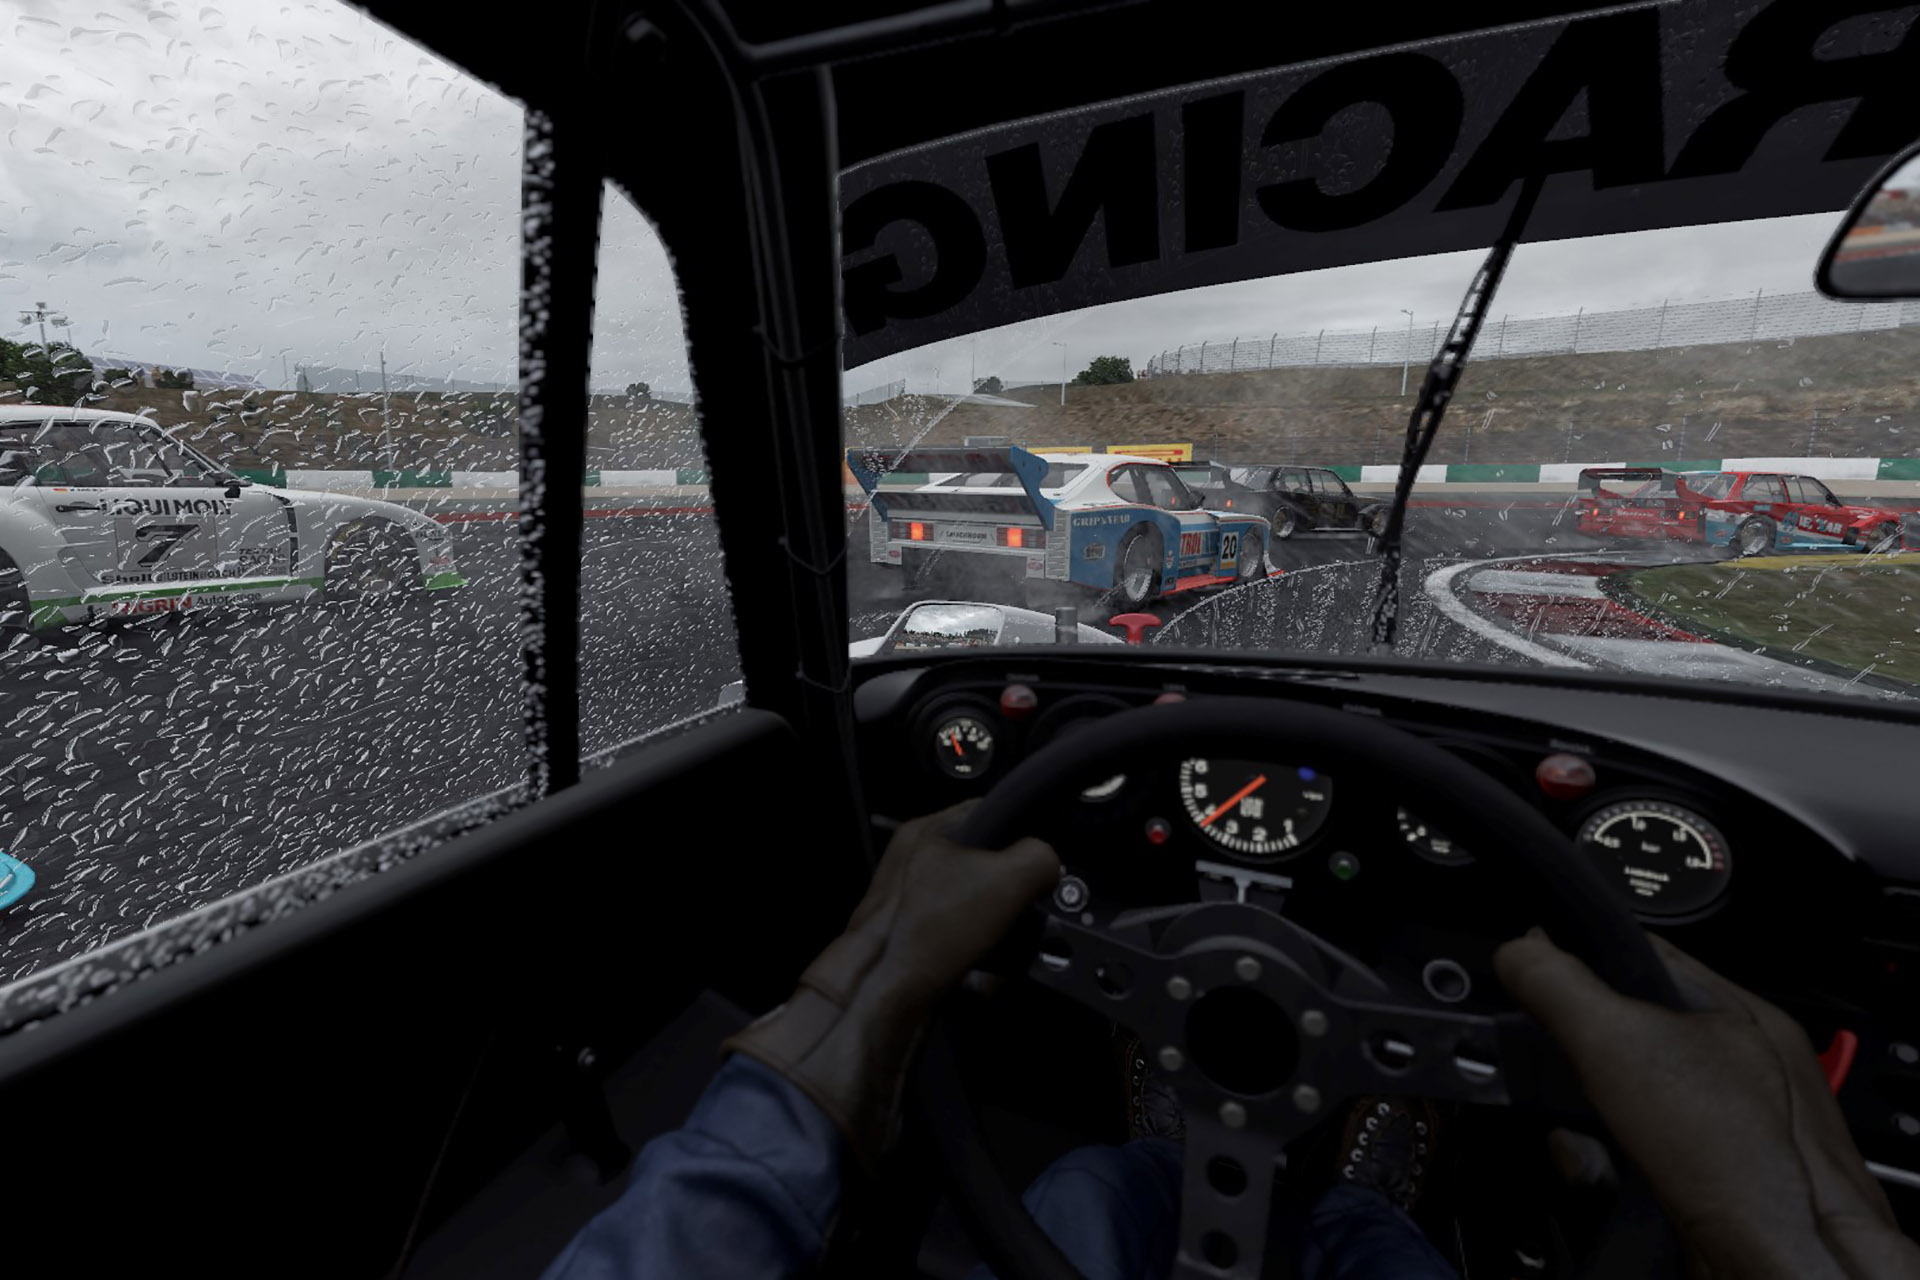 5 Reasons Why Project CARS 2 May Be the Next Forza